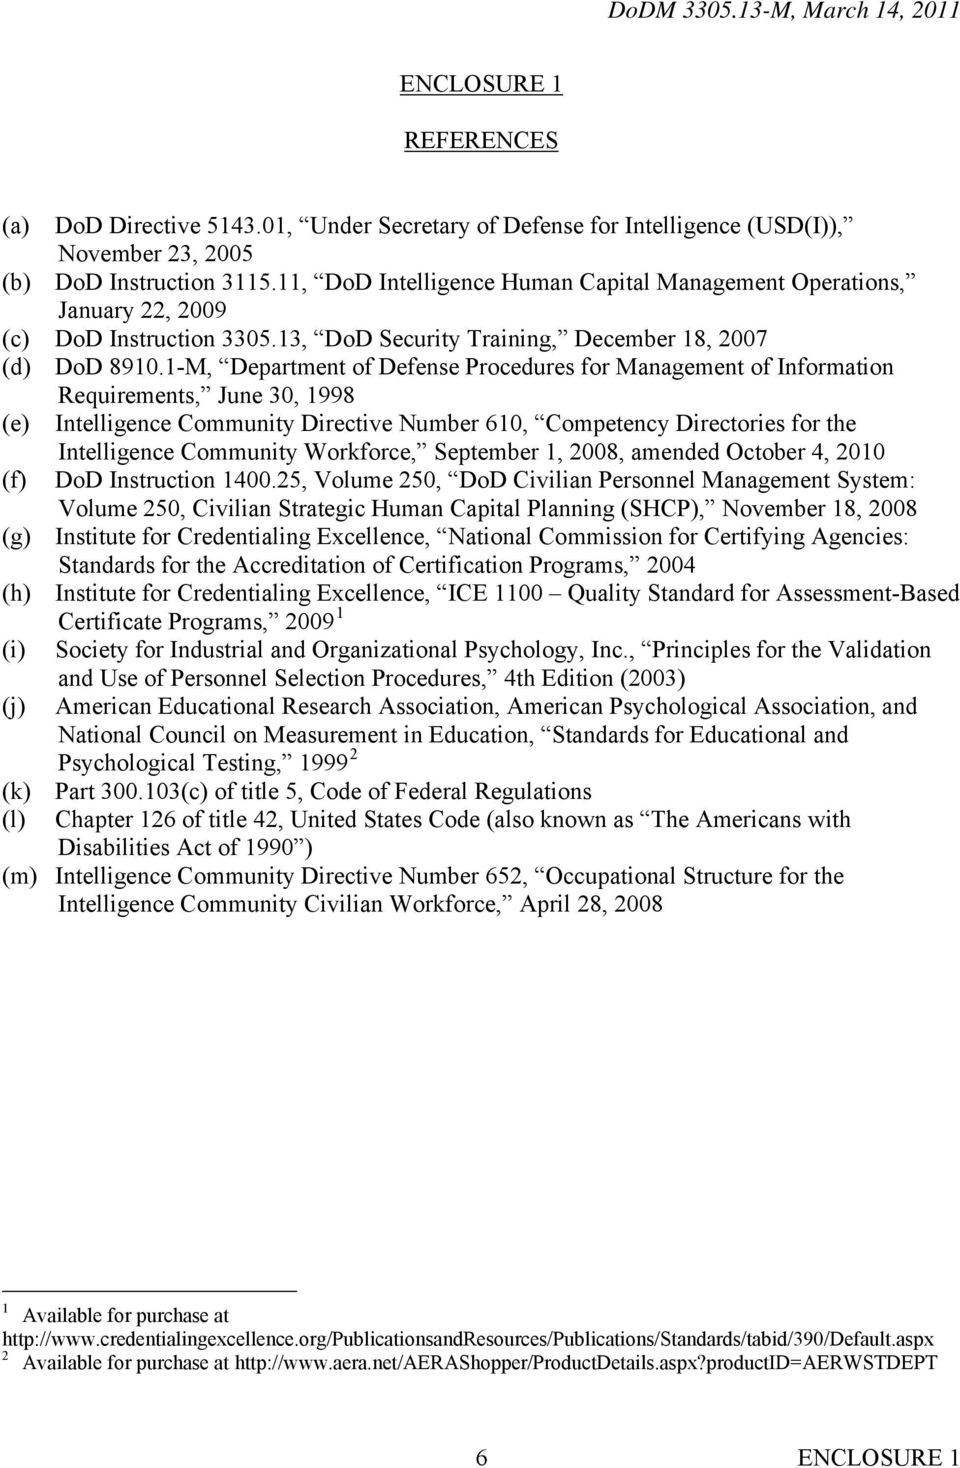 1-M, Department of Defense Procedures for Management of Information Requirements, June 30, 1998 (e) Intelligence Community Directive Number 610, Competency Directories for the (f) Intelligence